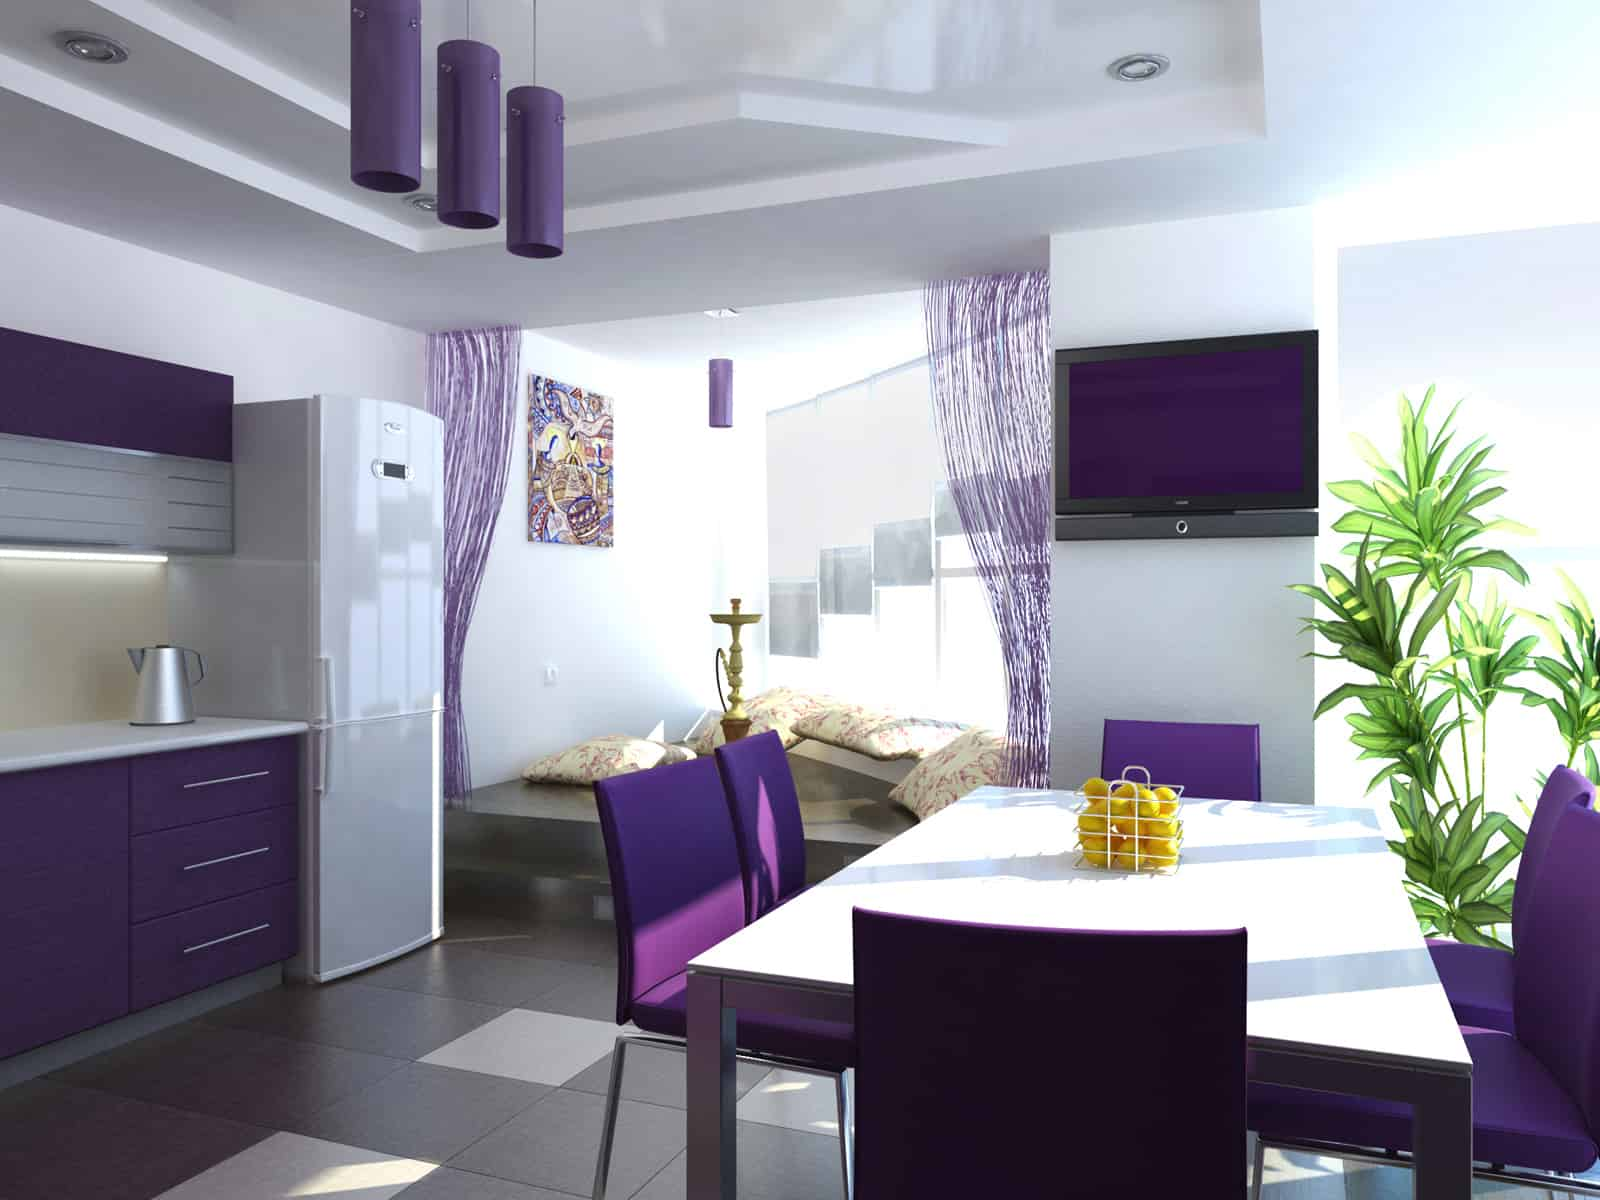 Purple Kitchen Interior Design Trends 2017 Purple Kitchen House Interior